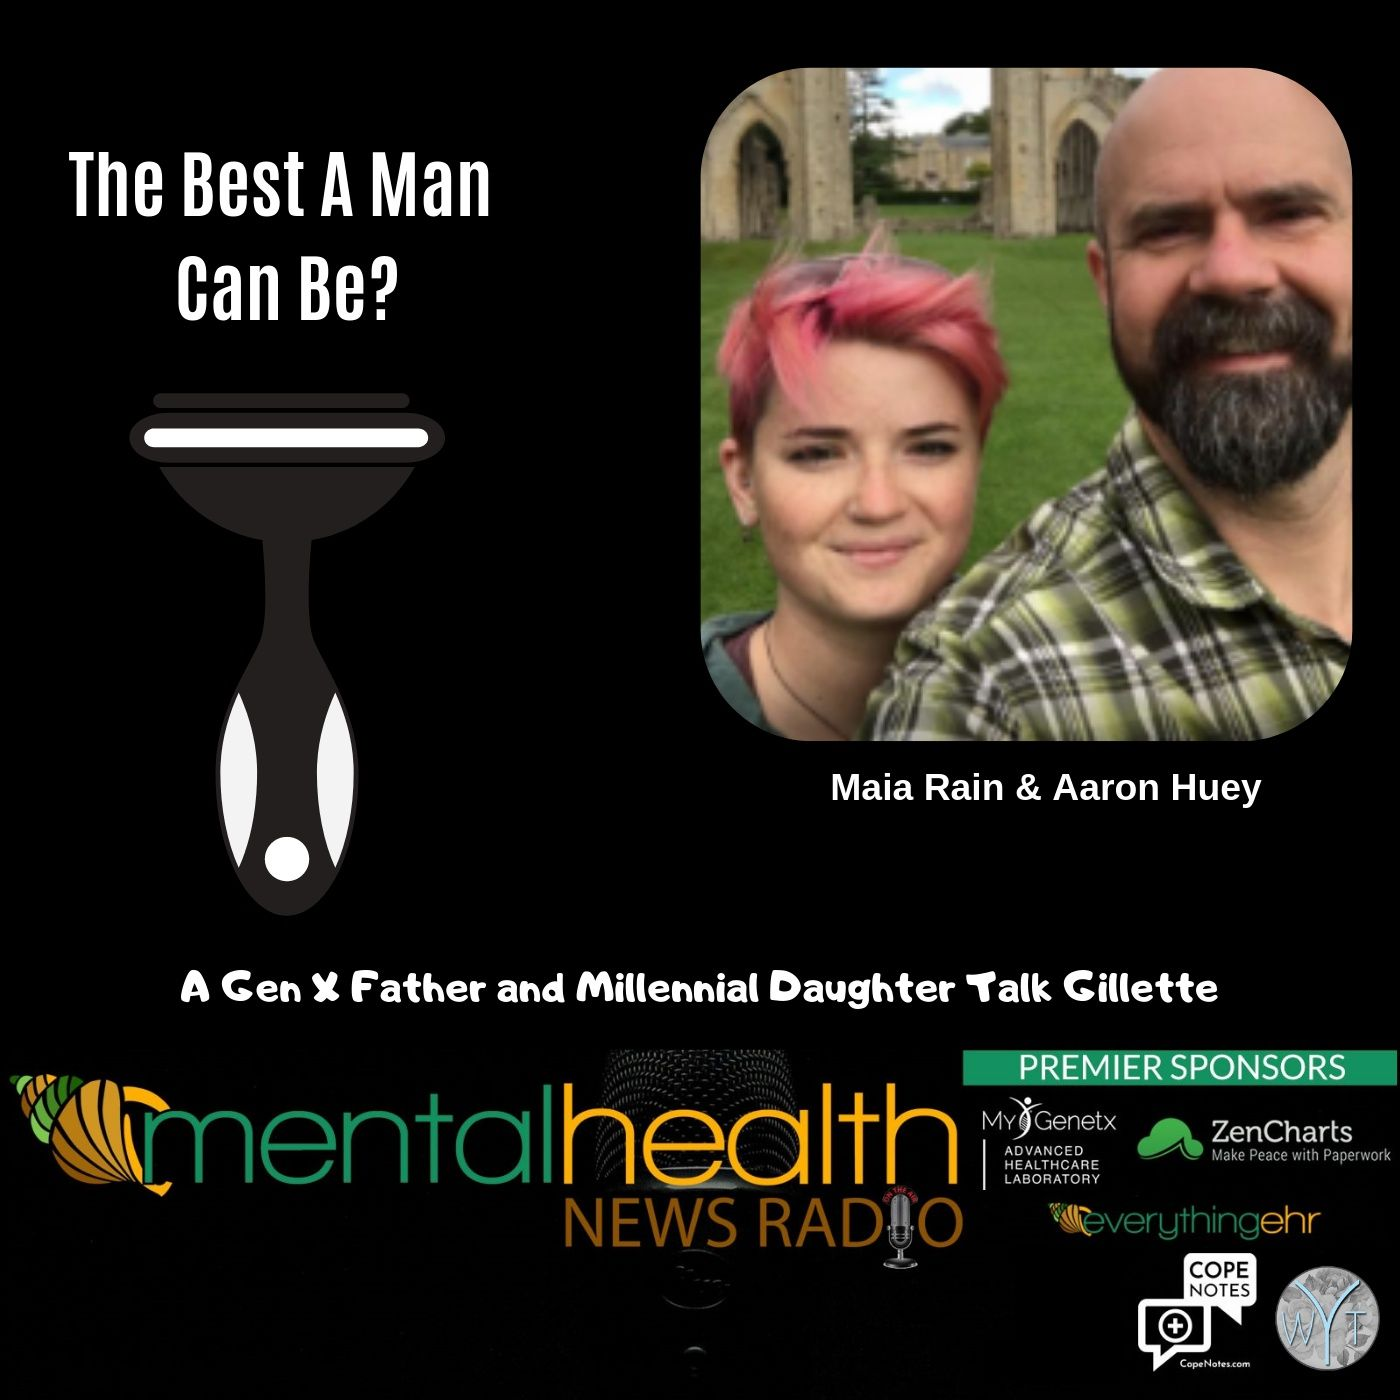 Mental Health News Radio - The Best A Man Can Be?